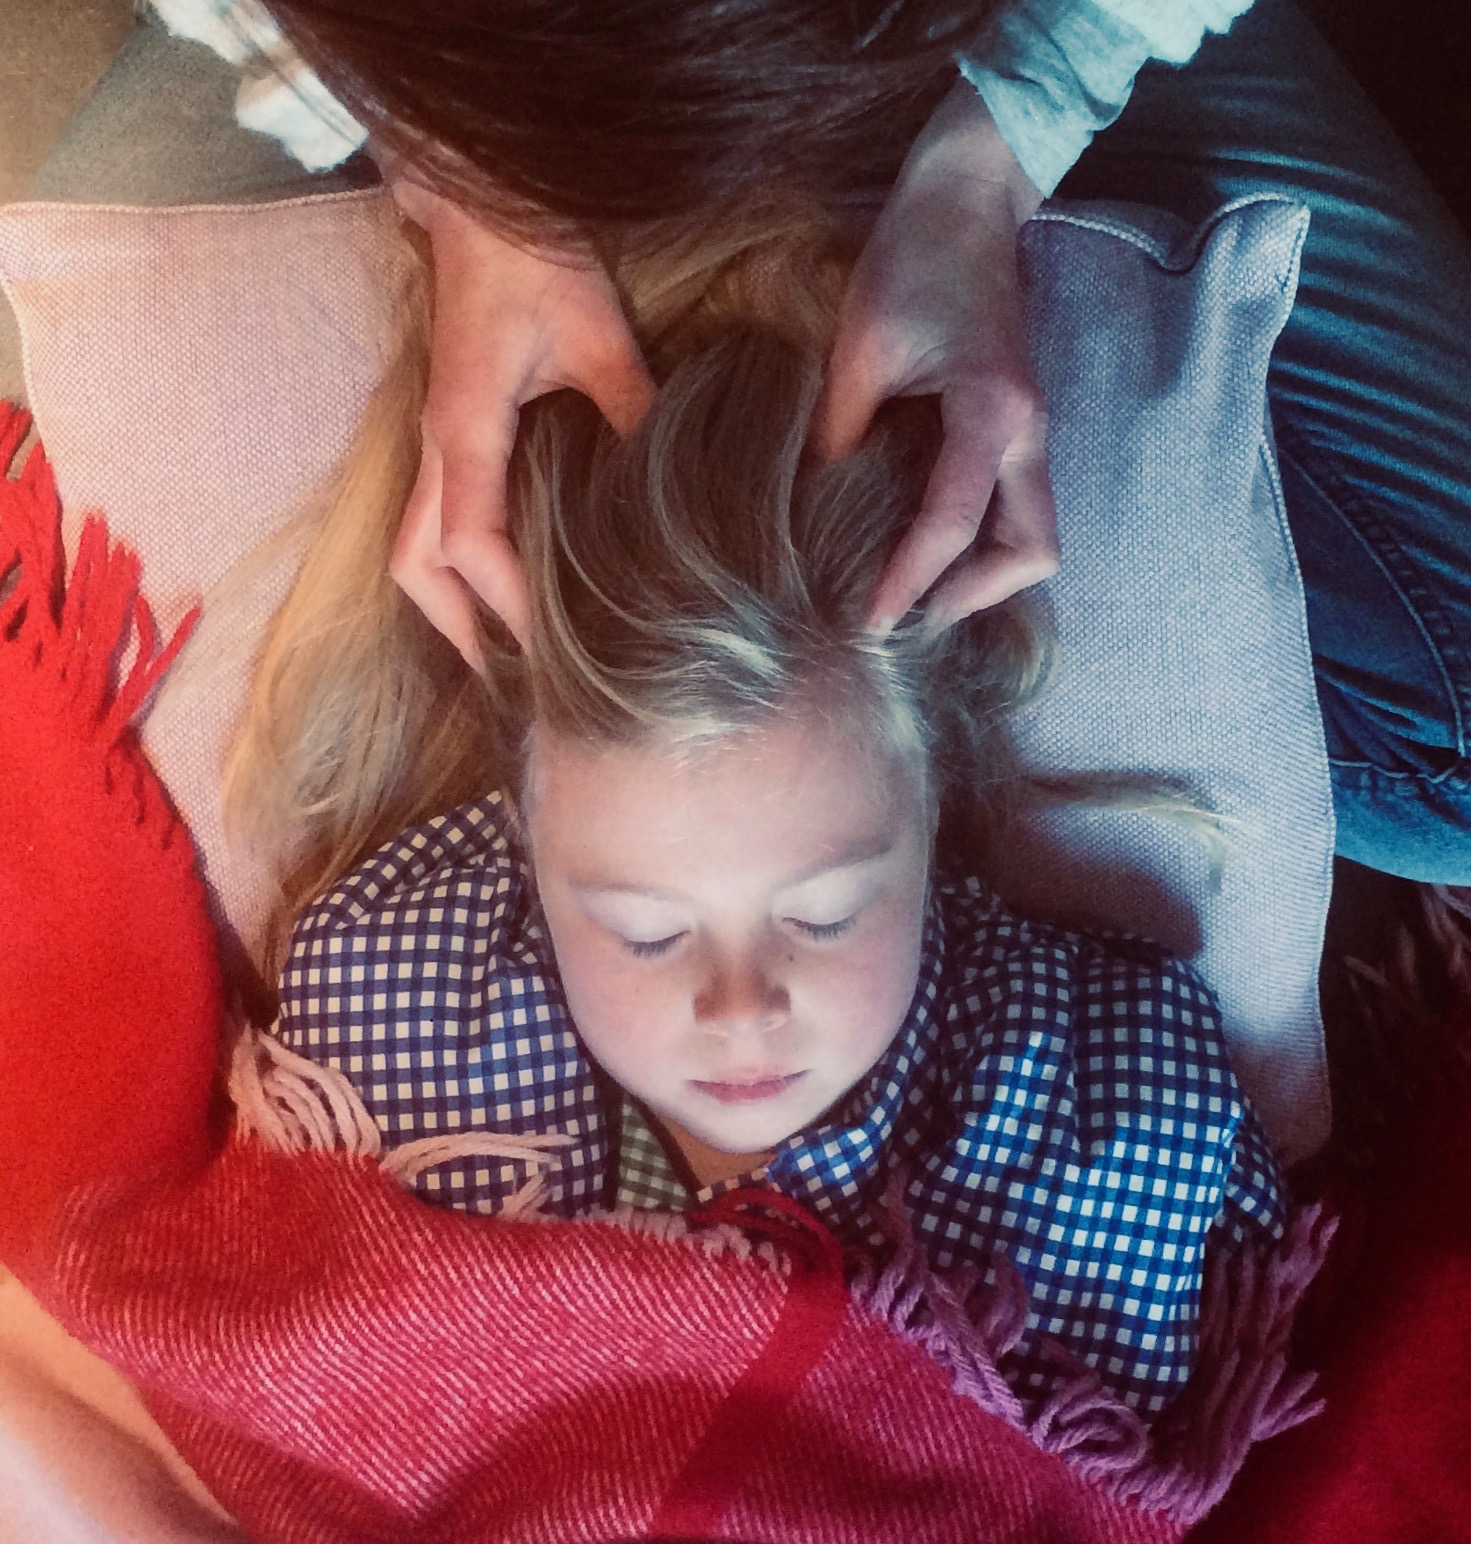 Family head massage workshop - Thursday 23rd May 20195.30pm to 7pmat Botelet FarmThis candlelit head massage workshop is for parents/carers and their children to learn together how to give a calming head massage. Costs £15 for each parent and child (£7.50 per person). Book your place on this course.